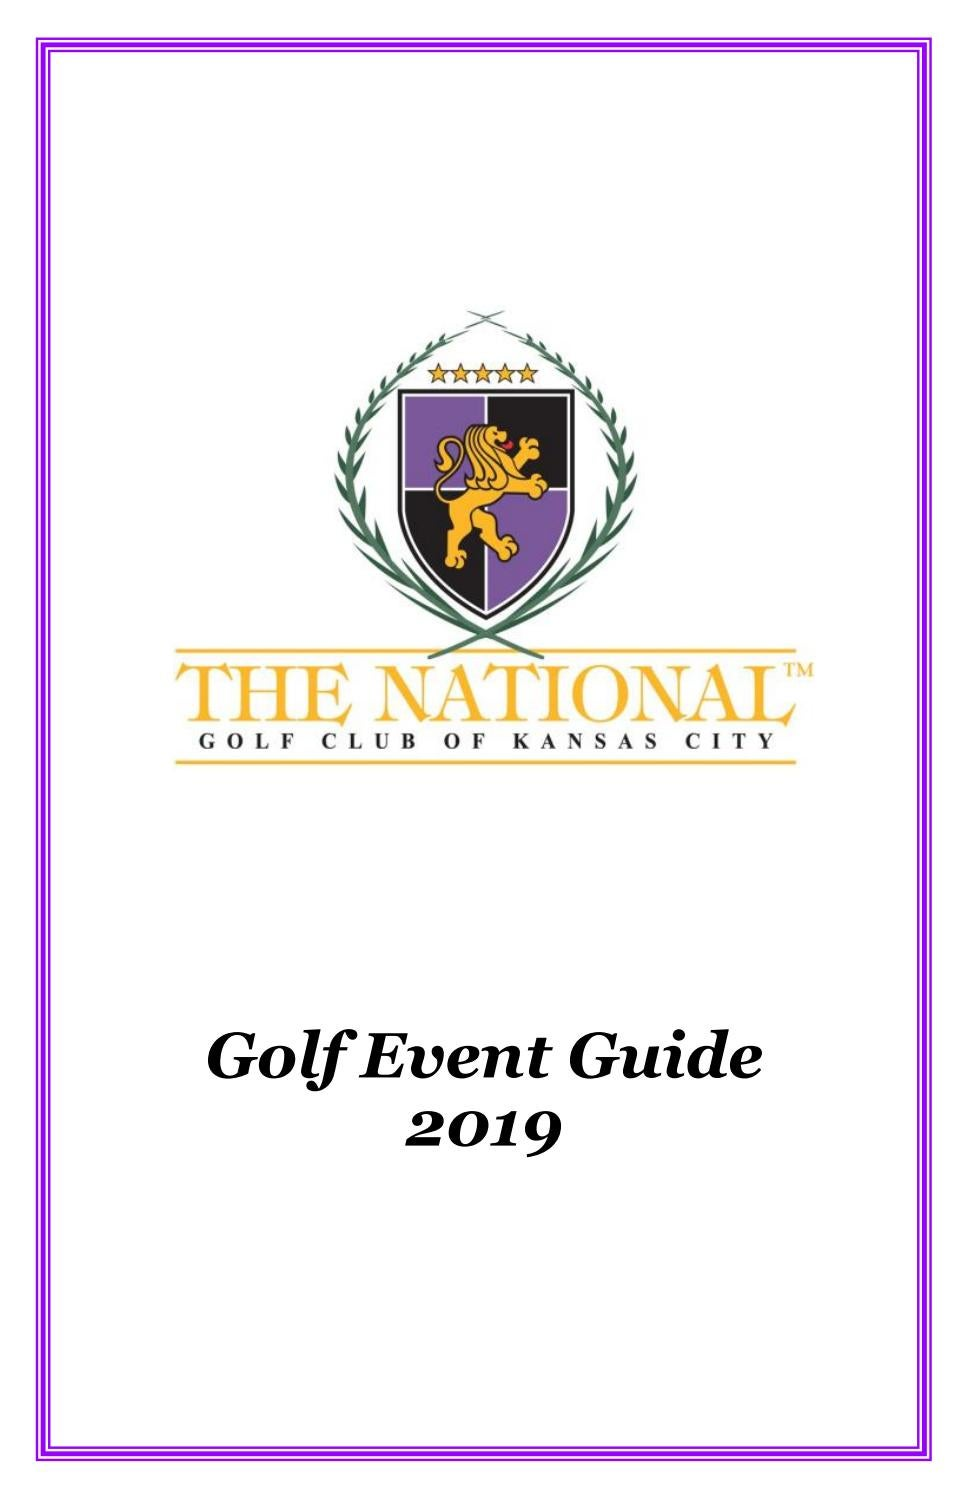 2019 Golf Event Guide for The National Golf Club by fivestar